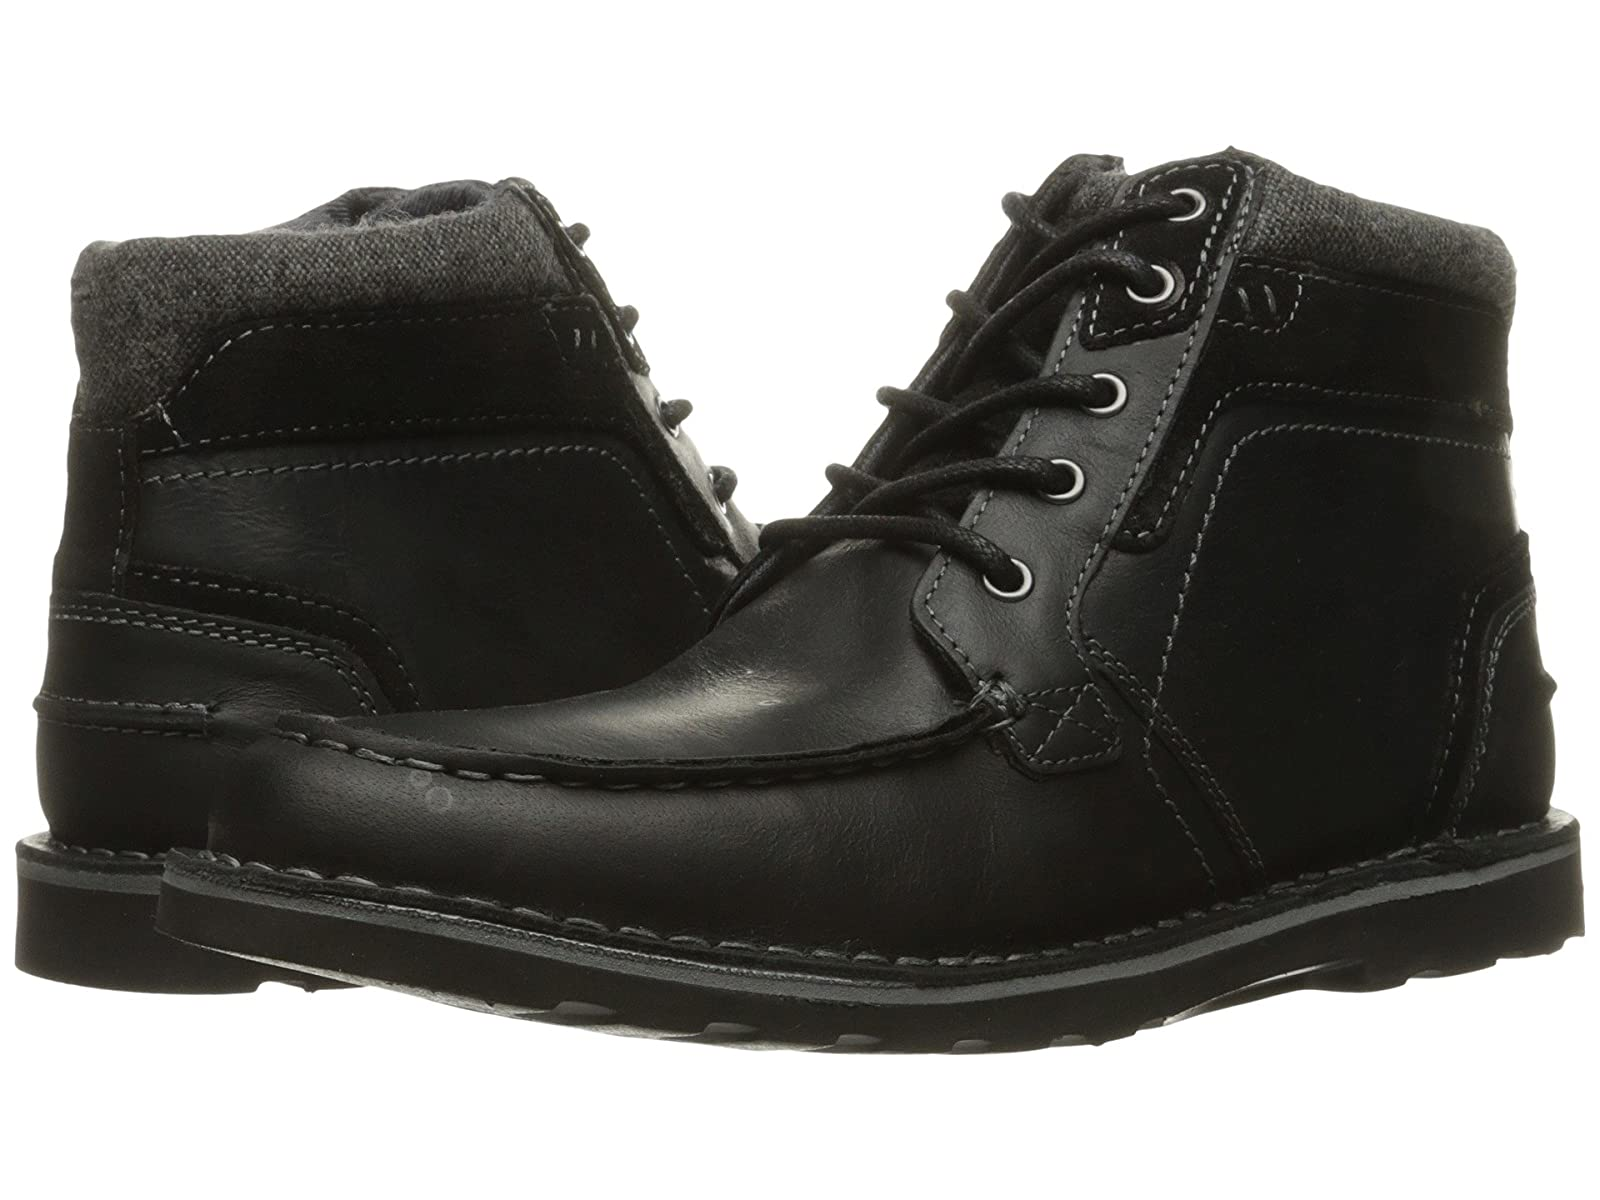 Steve Madden IntrepadCheap and distinctive eye-catching shoes